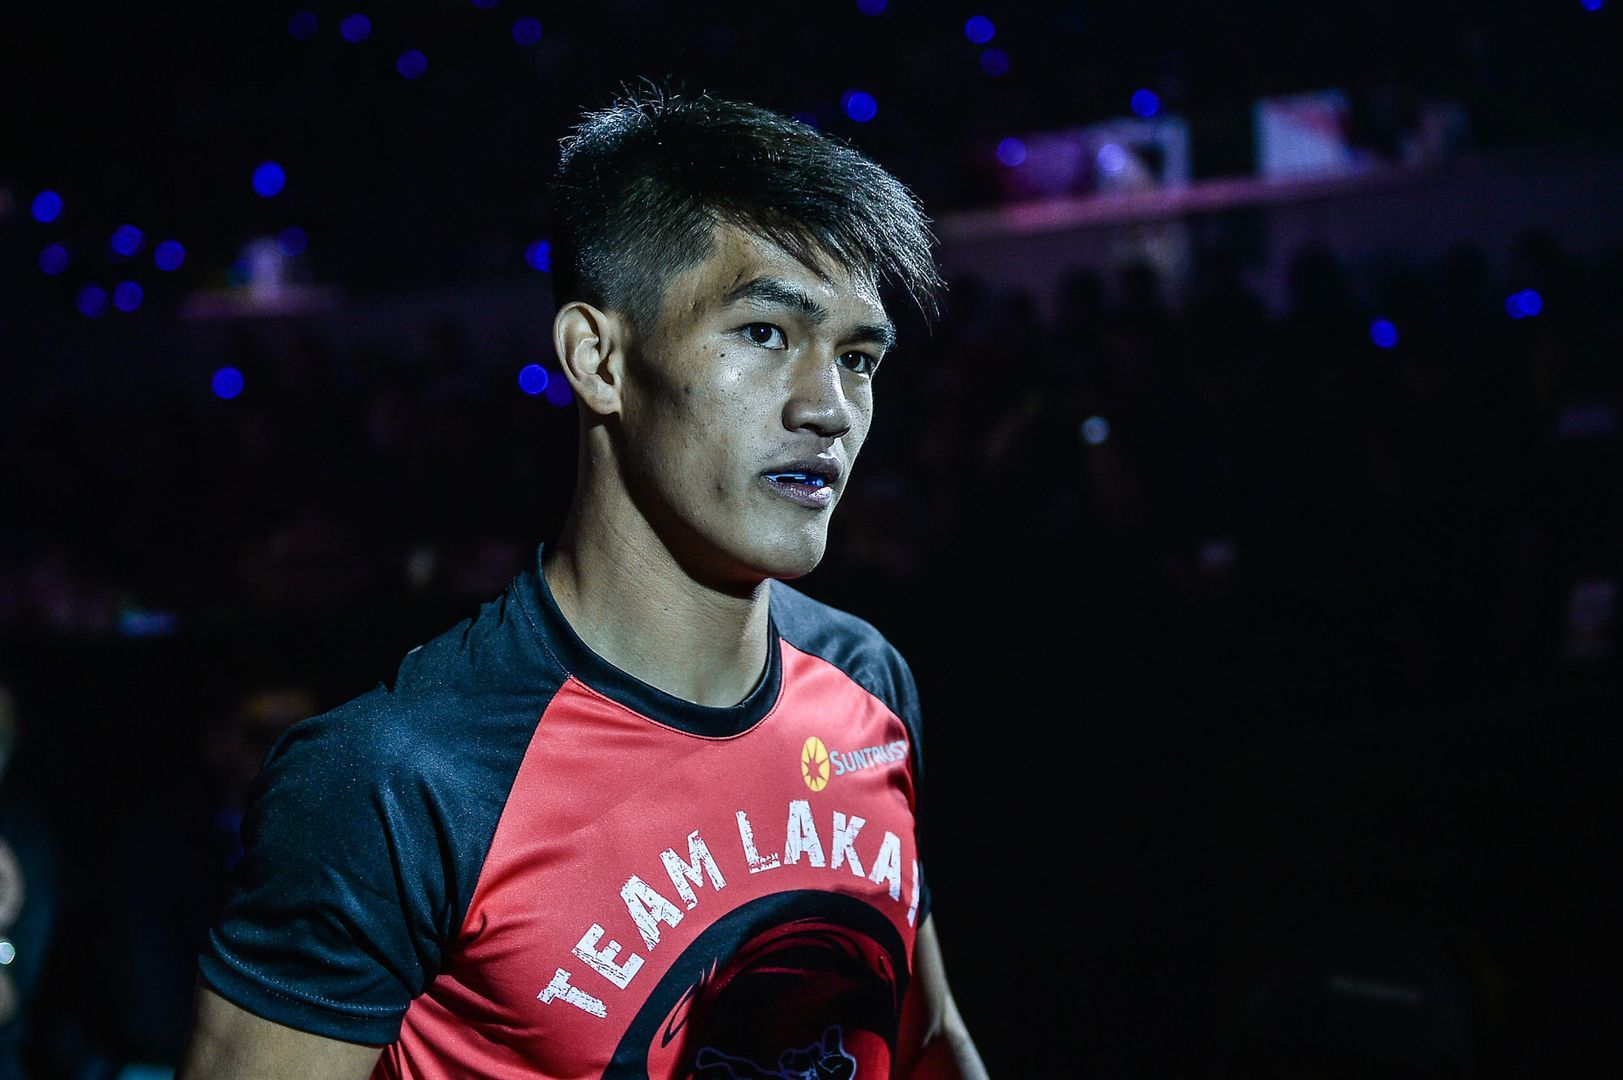 Philippine martial artist Danny Kingad makes his ring walk at ONE: DAWN OF HEROES